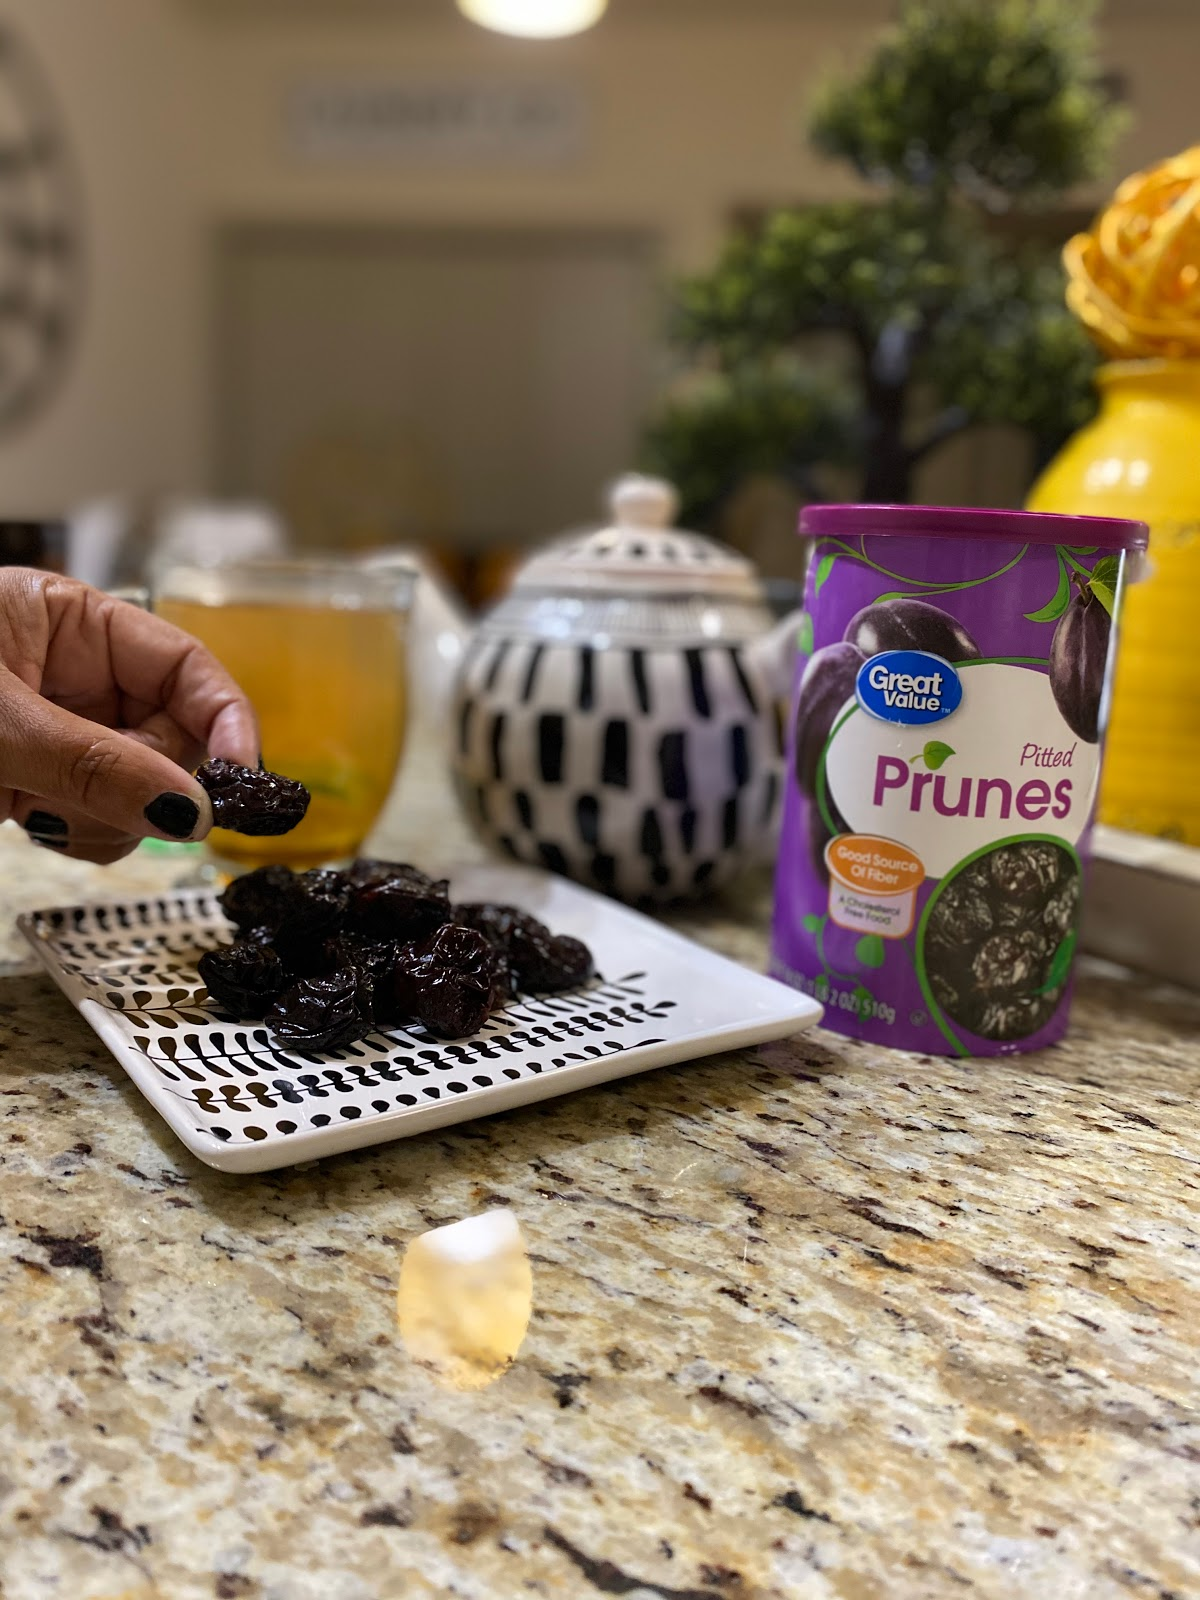 Eating prunes help regulate the tummy and keeps the bowels moving